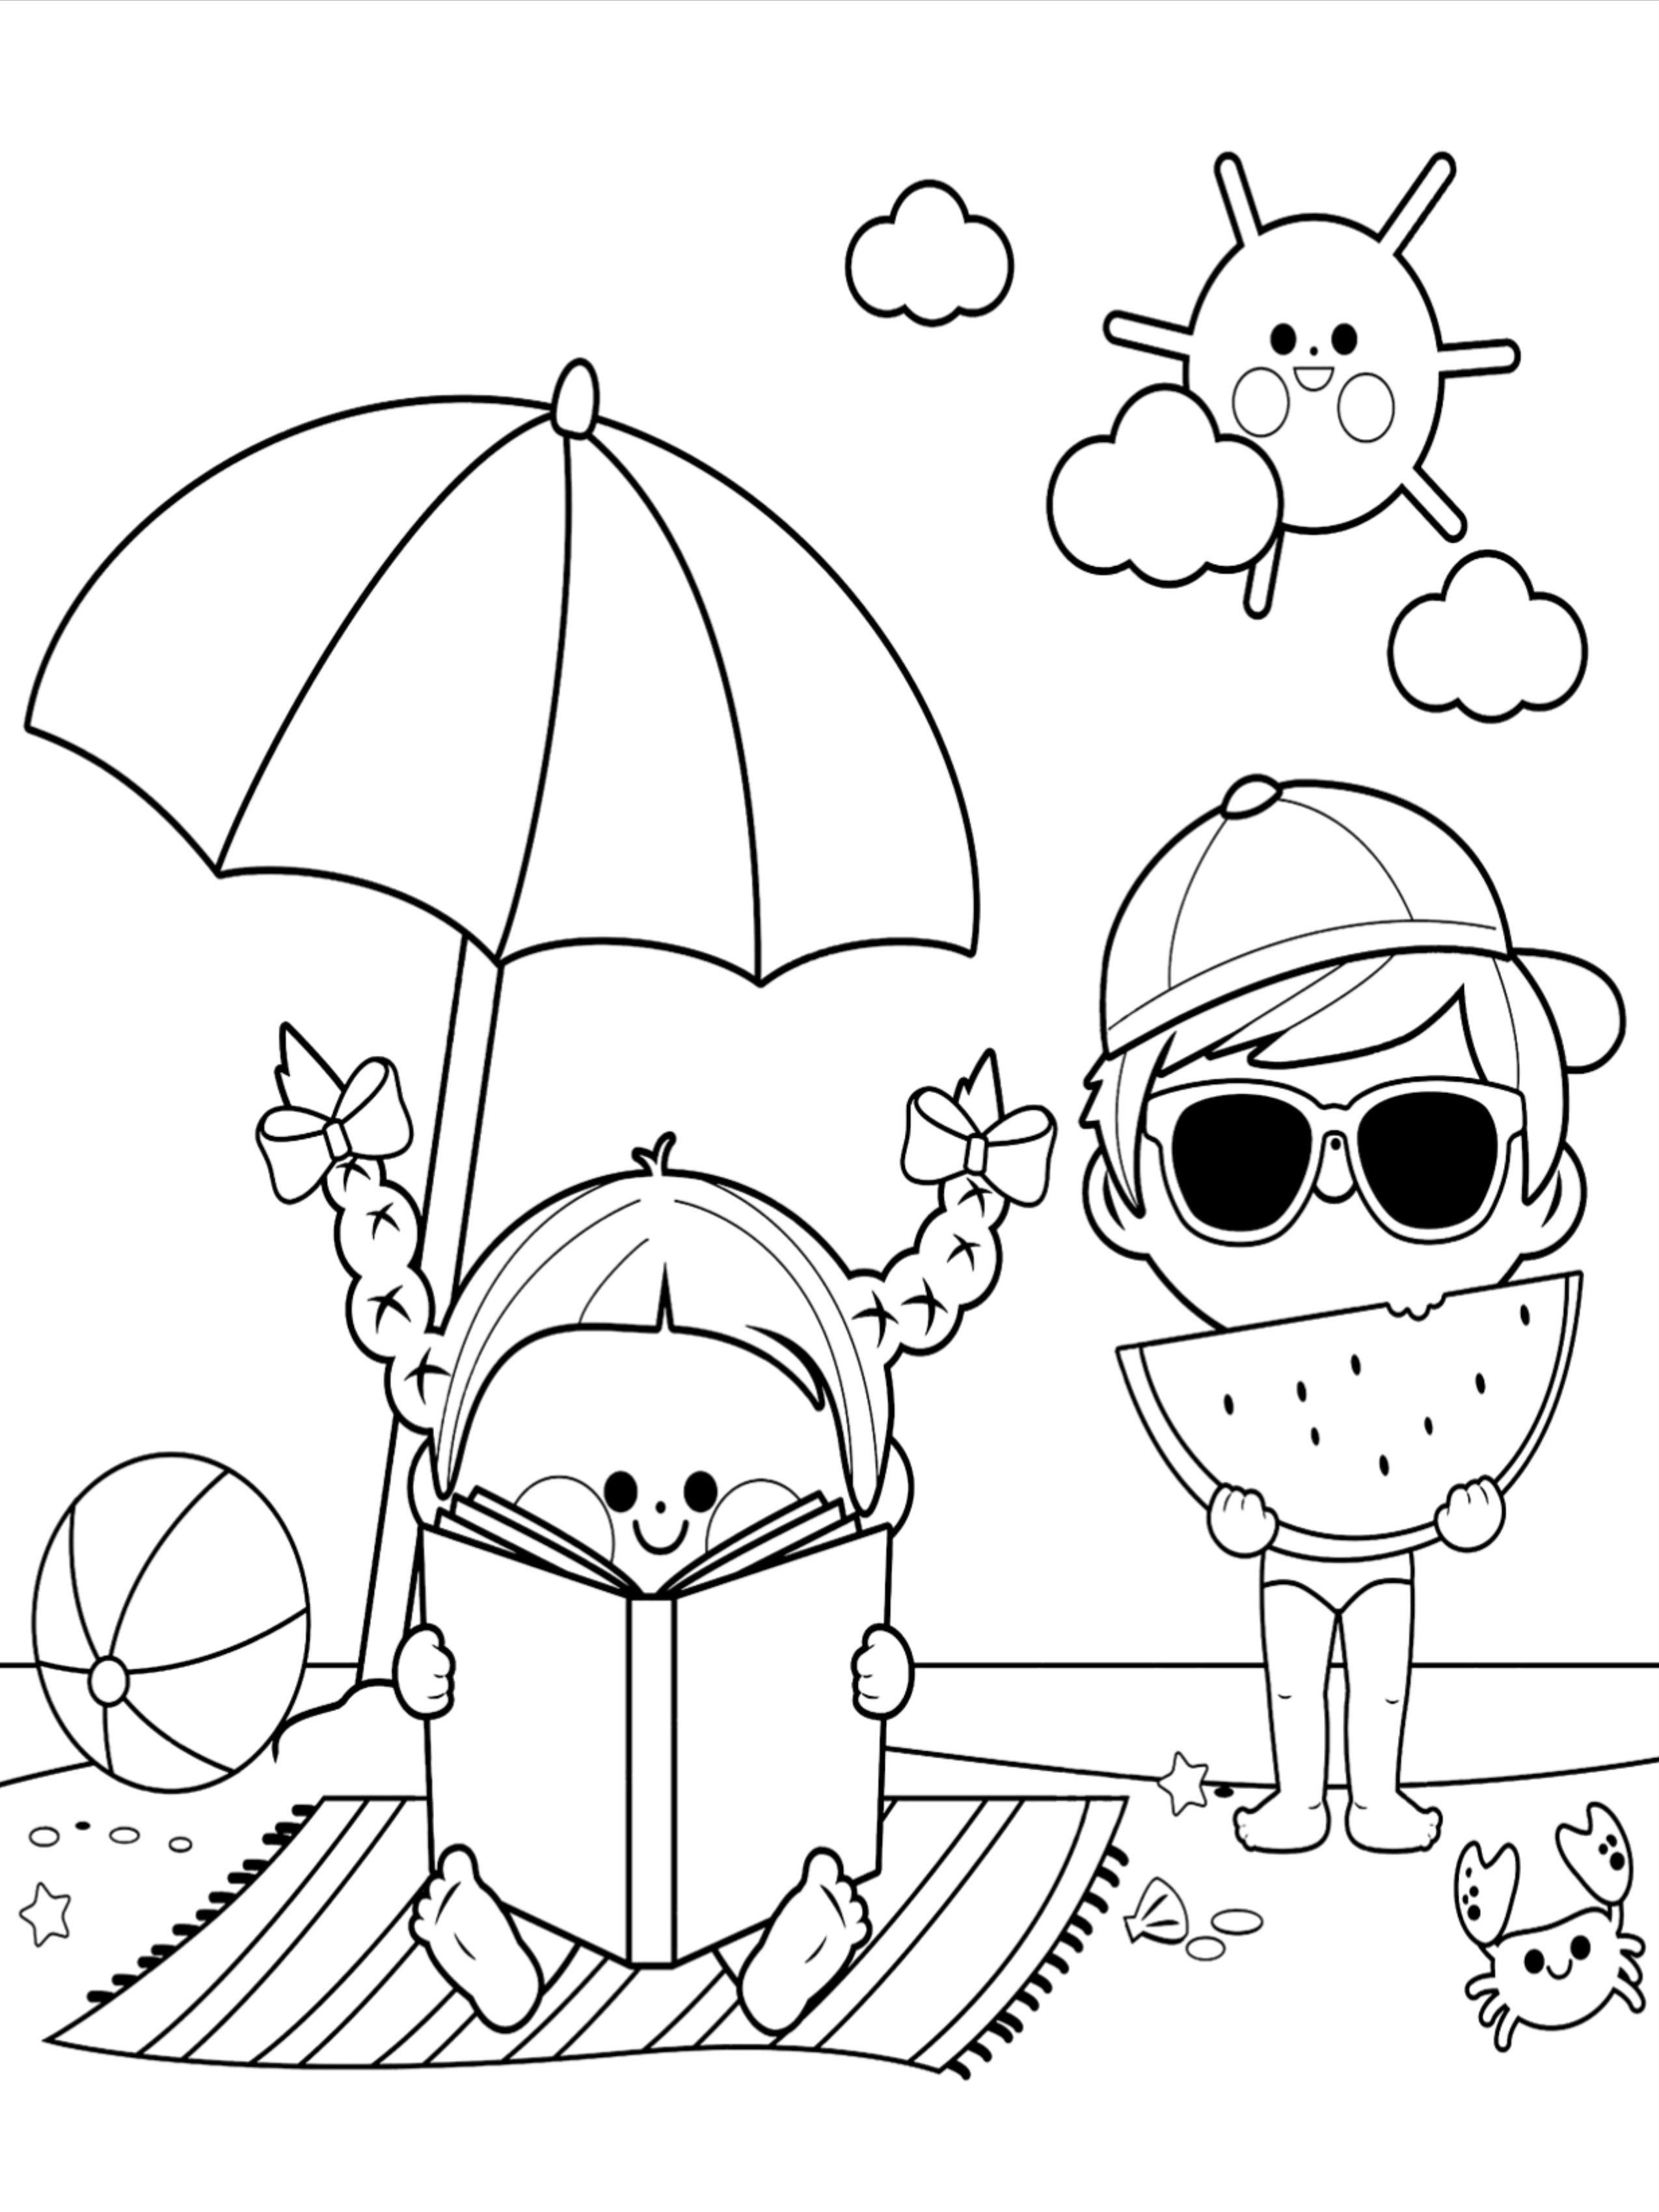 50 Weather Coloring Pages For Kids Coloring Pages For Kids Printables Free Kids Coloring Pages